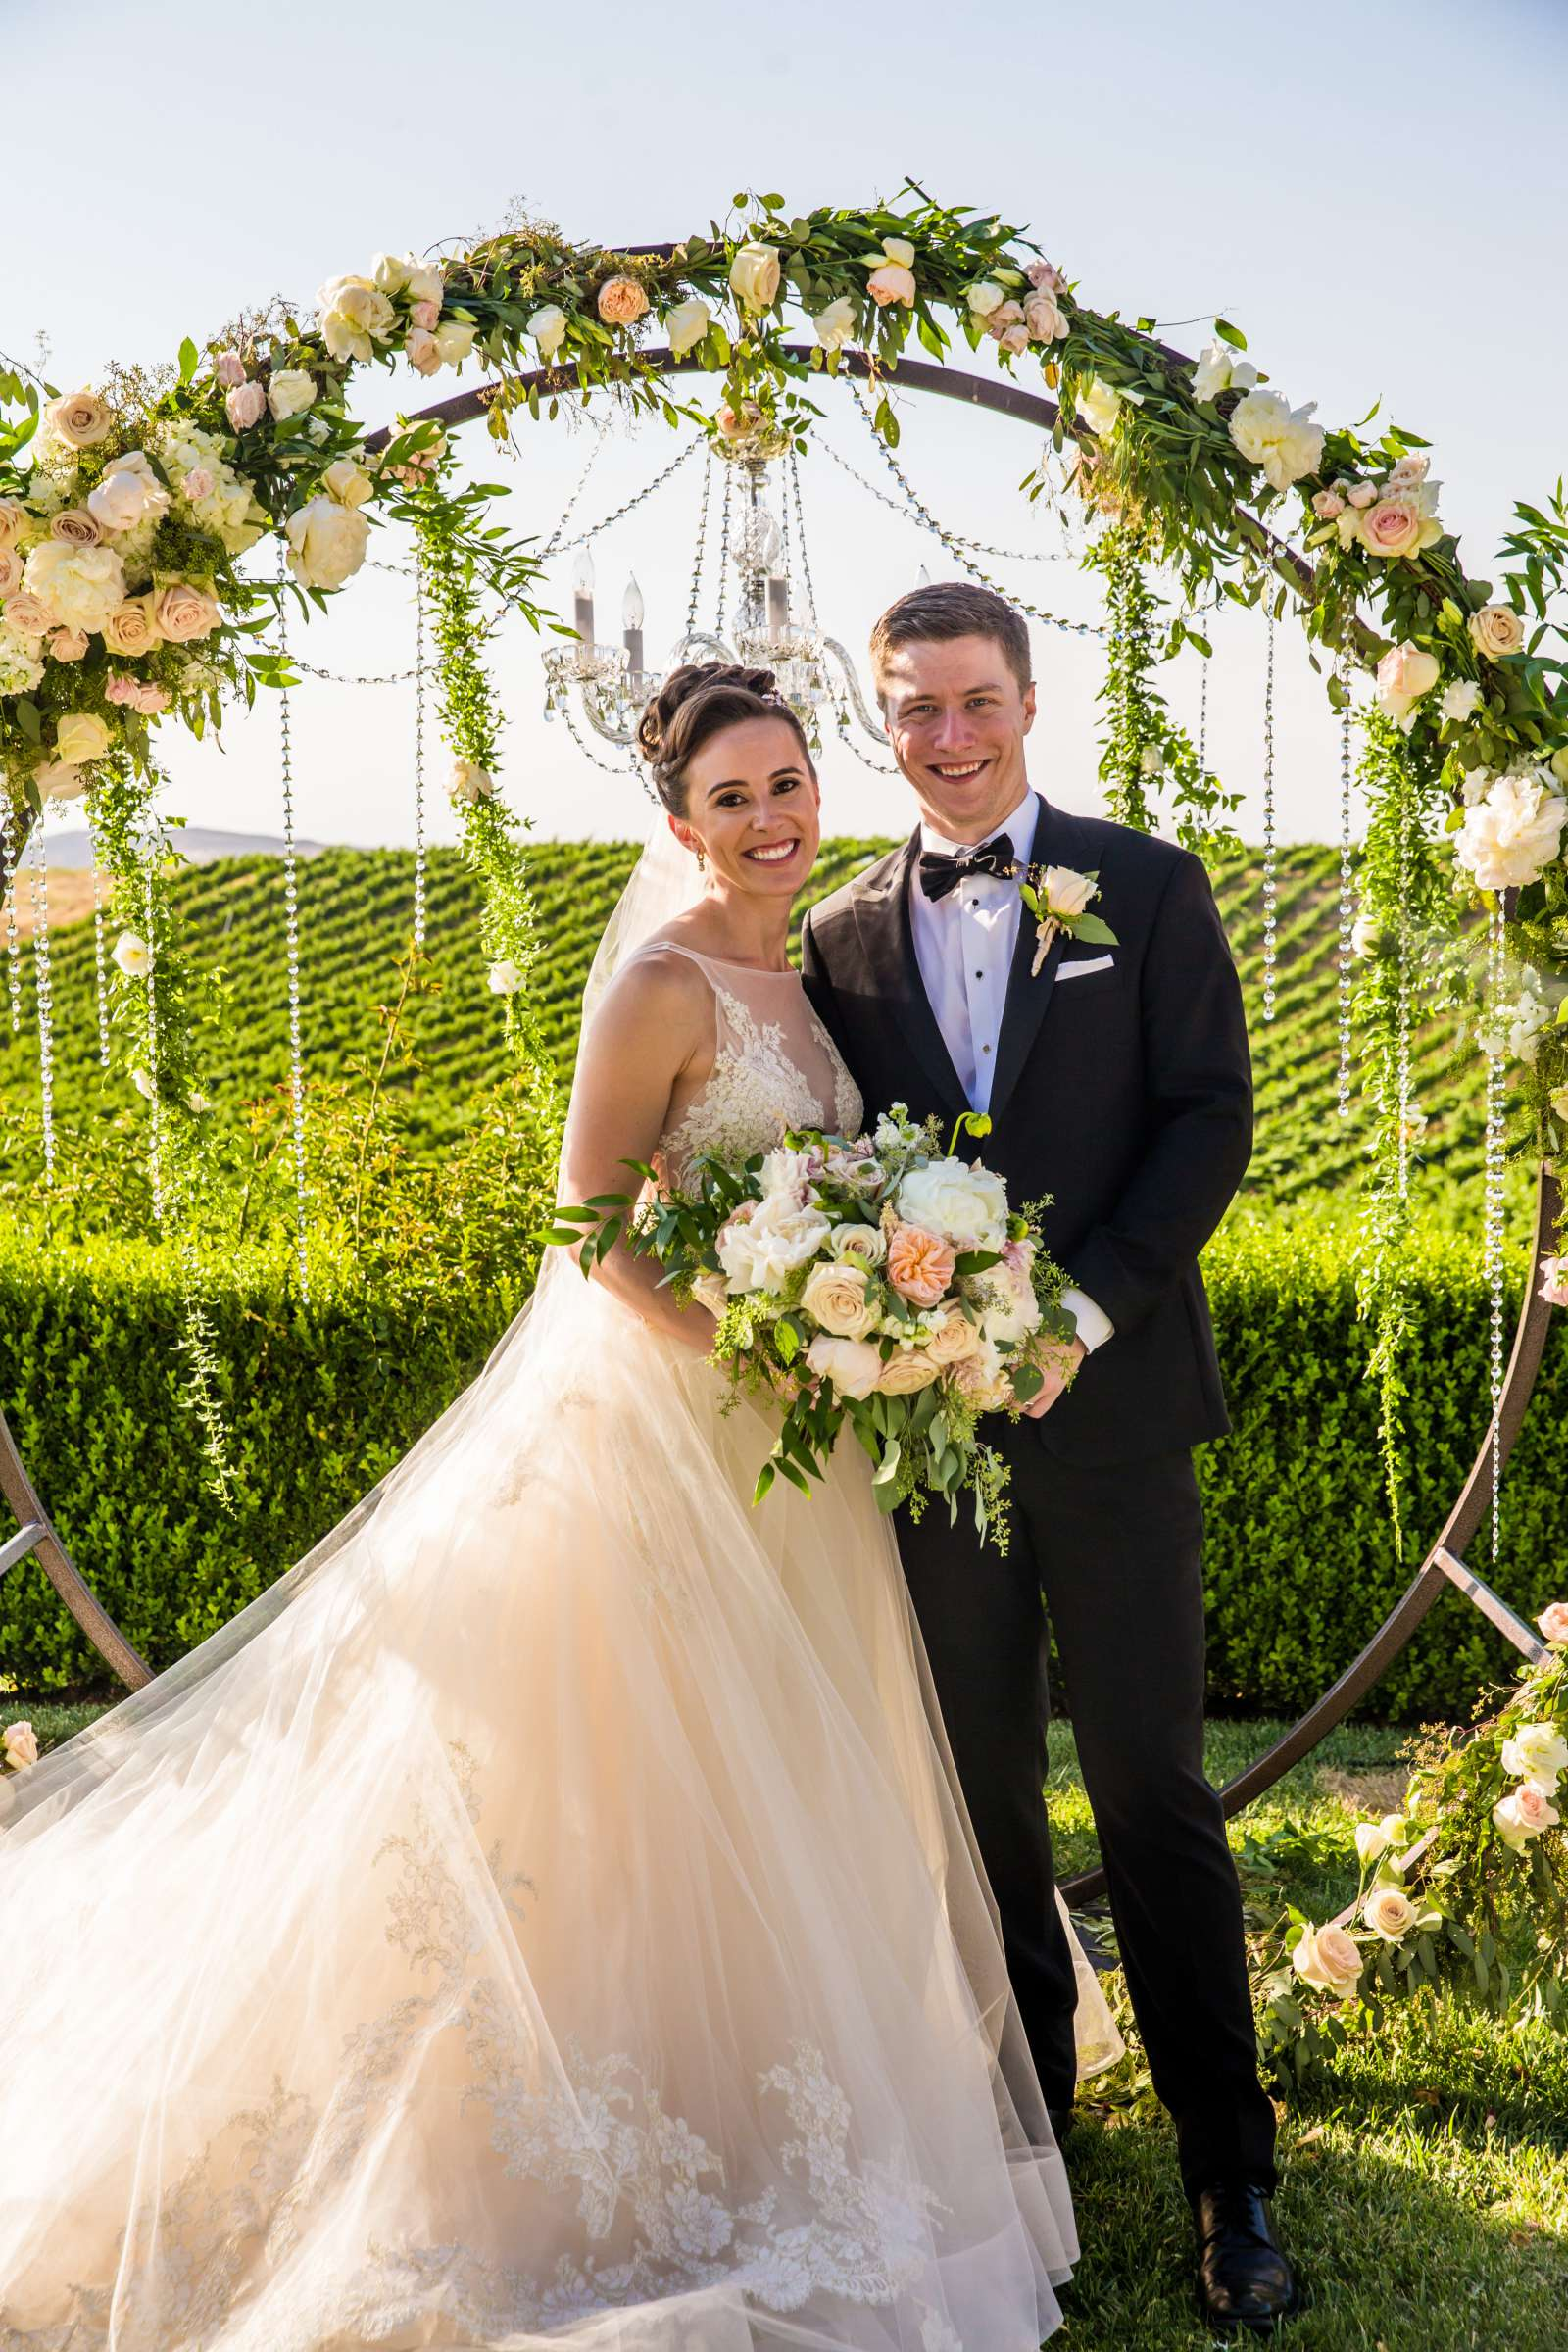 Callaway Vineyards & Winery Wedding, Natalia and Mike Wedding Photo #4 by True Photography